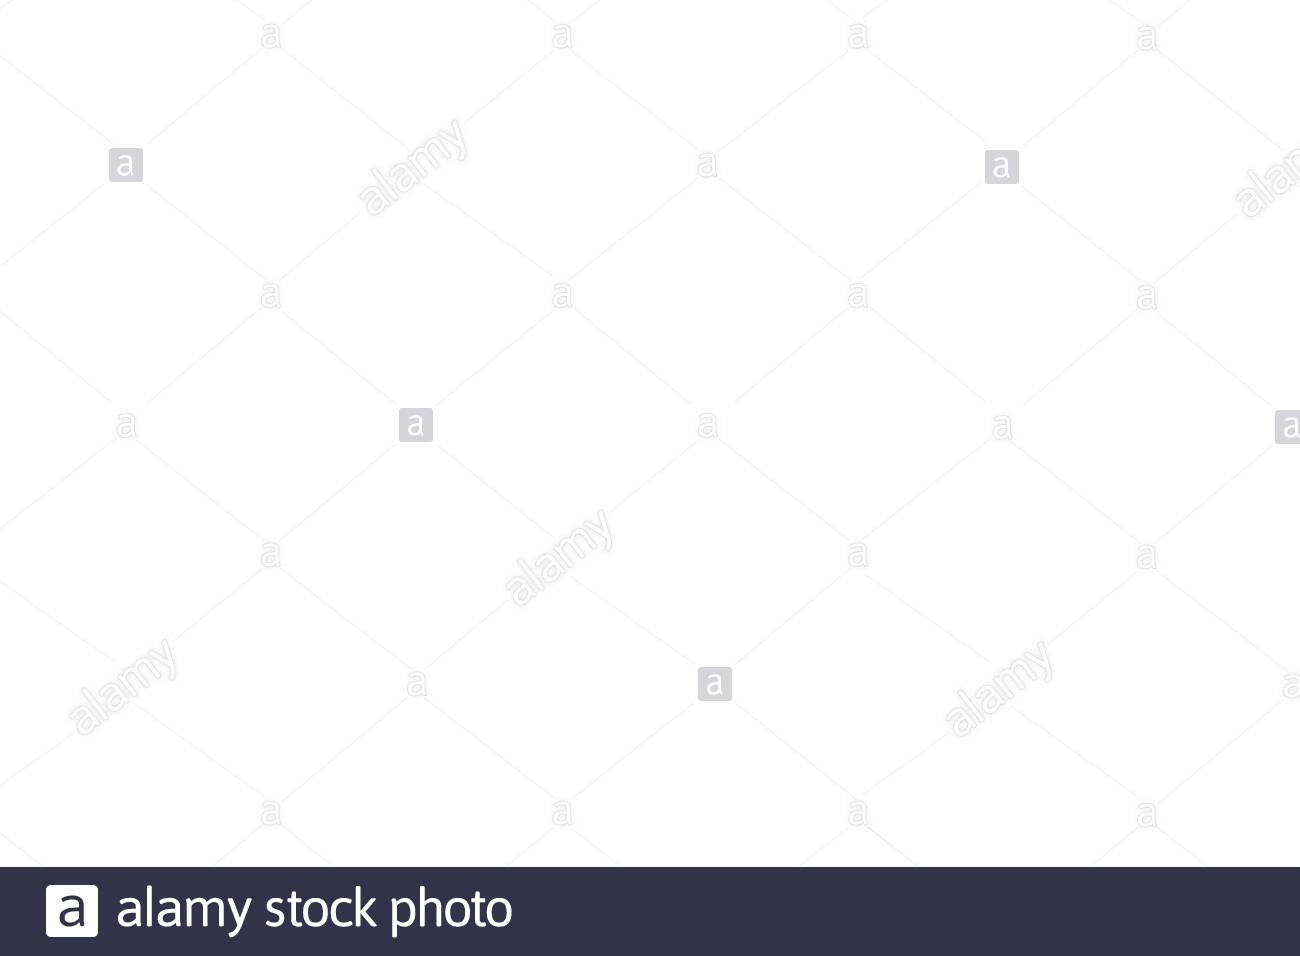 plain white background or wallpaper abstract image 2E064N7